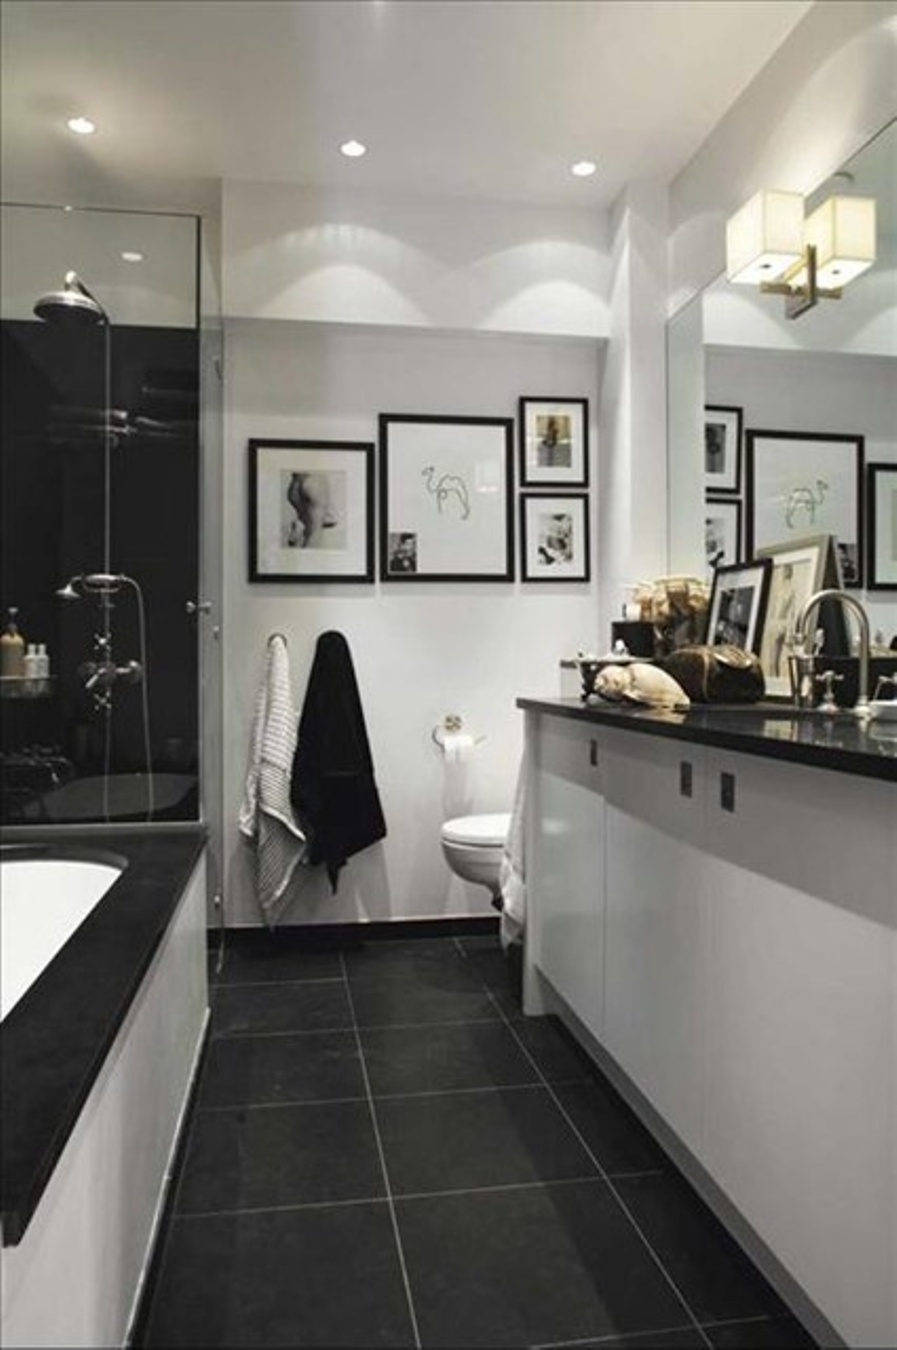 Black and white bathroom walls - Black Tile Bathroom Floor Bathroom With Dark Floor Tiles And White Walls Bb Office Red Stone